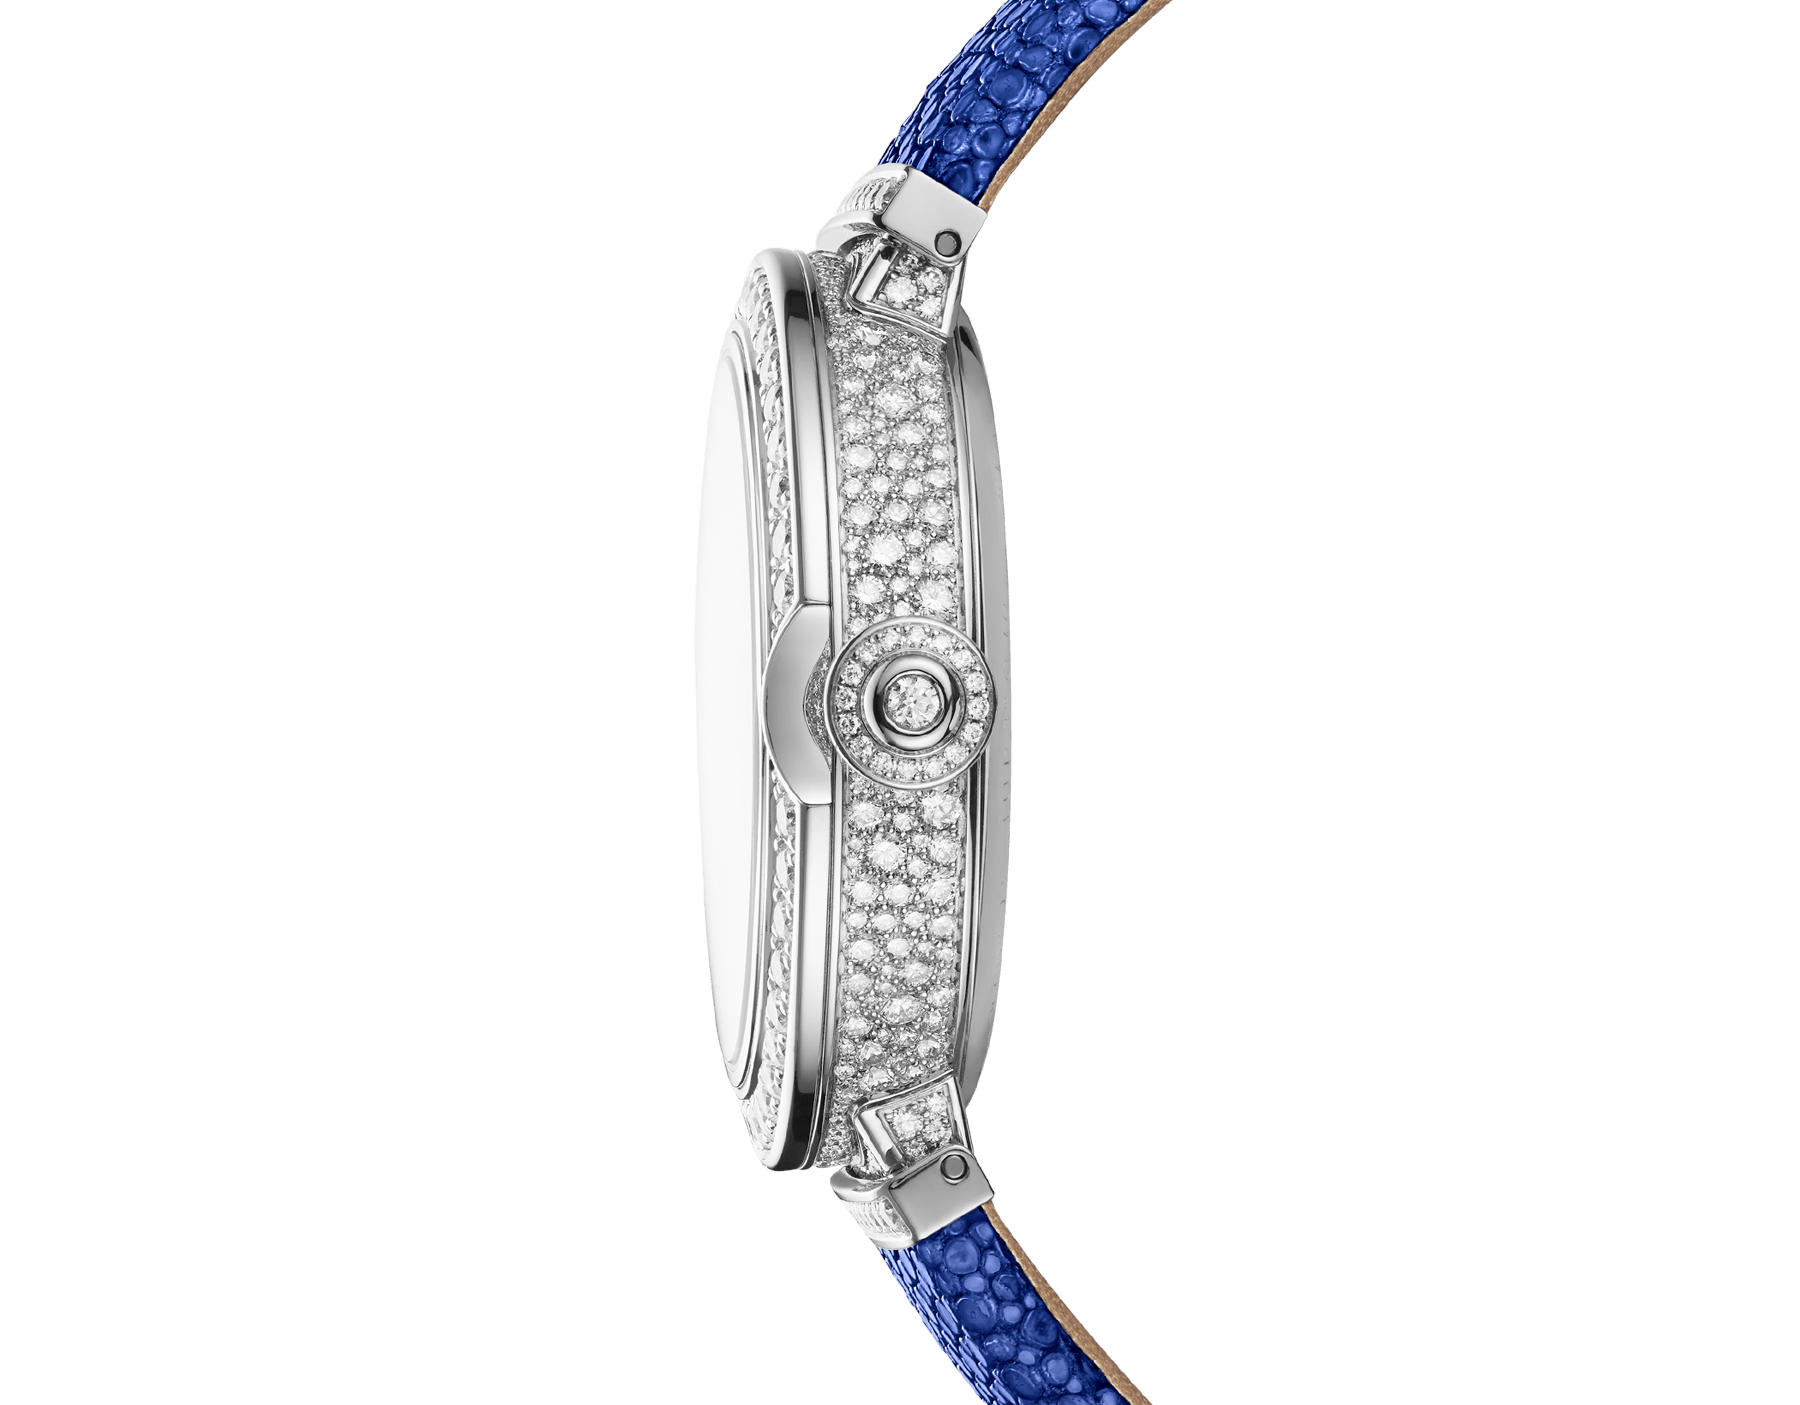 LVCEA Tourbillon Limited Edition watch with mechanical manufacture movement, automatic winding, see-through tourbillon, 18 kt white gold case set with round brilliant-cut diamonds, full-pavé dial with round brilliant-cut diamonds and blue colour finish, and blue galuchat bracelet 102881 image 3